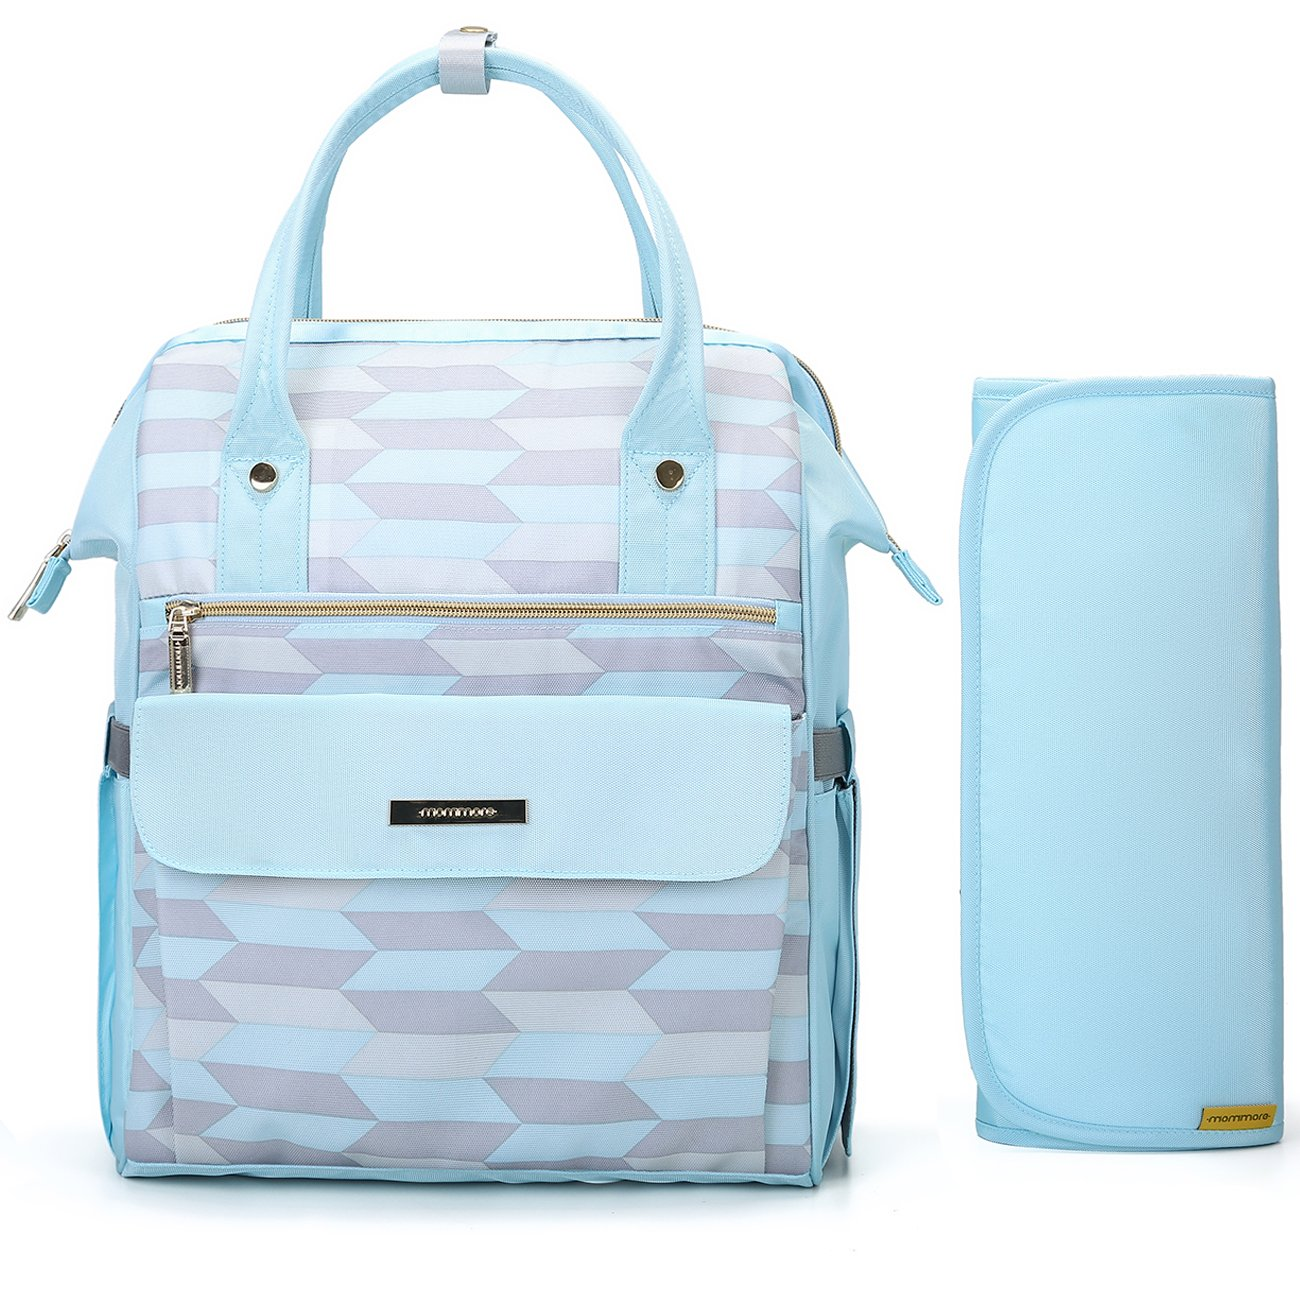 Top 5 Best Diaper Bags In 2018 That You Need To Have 4